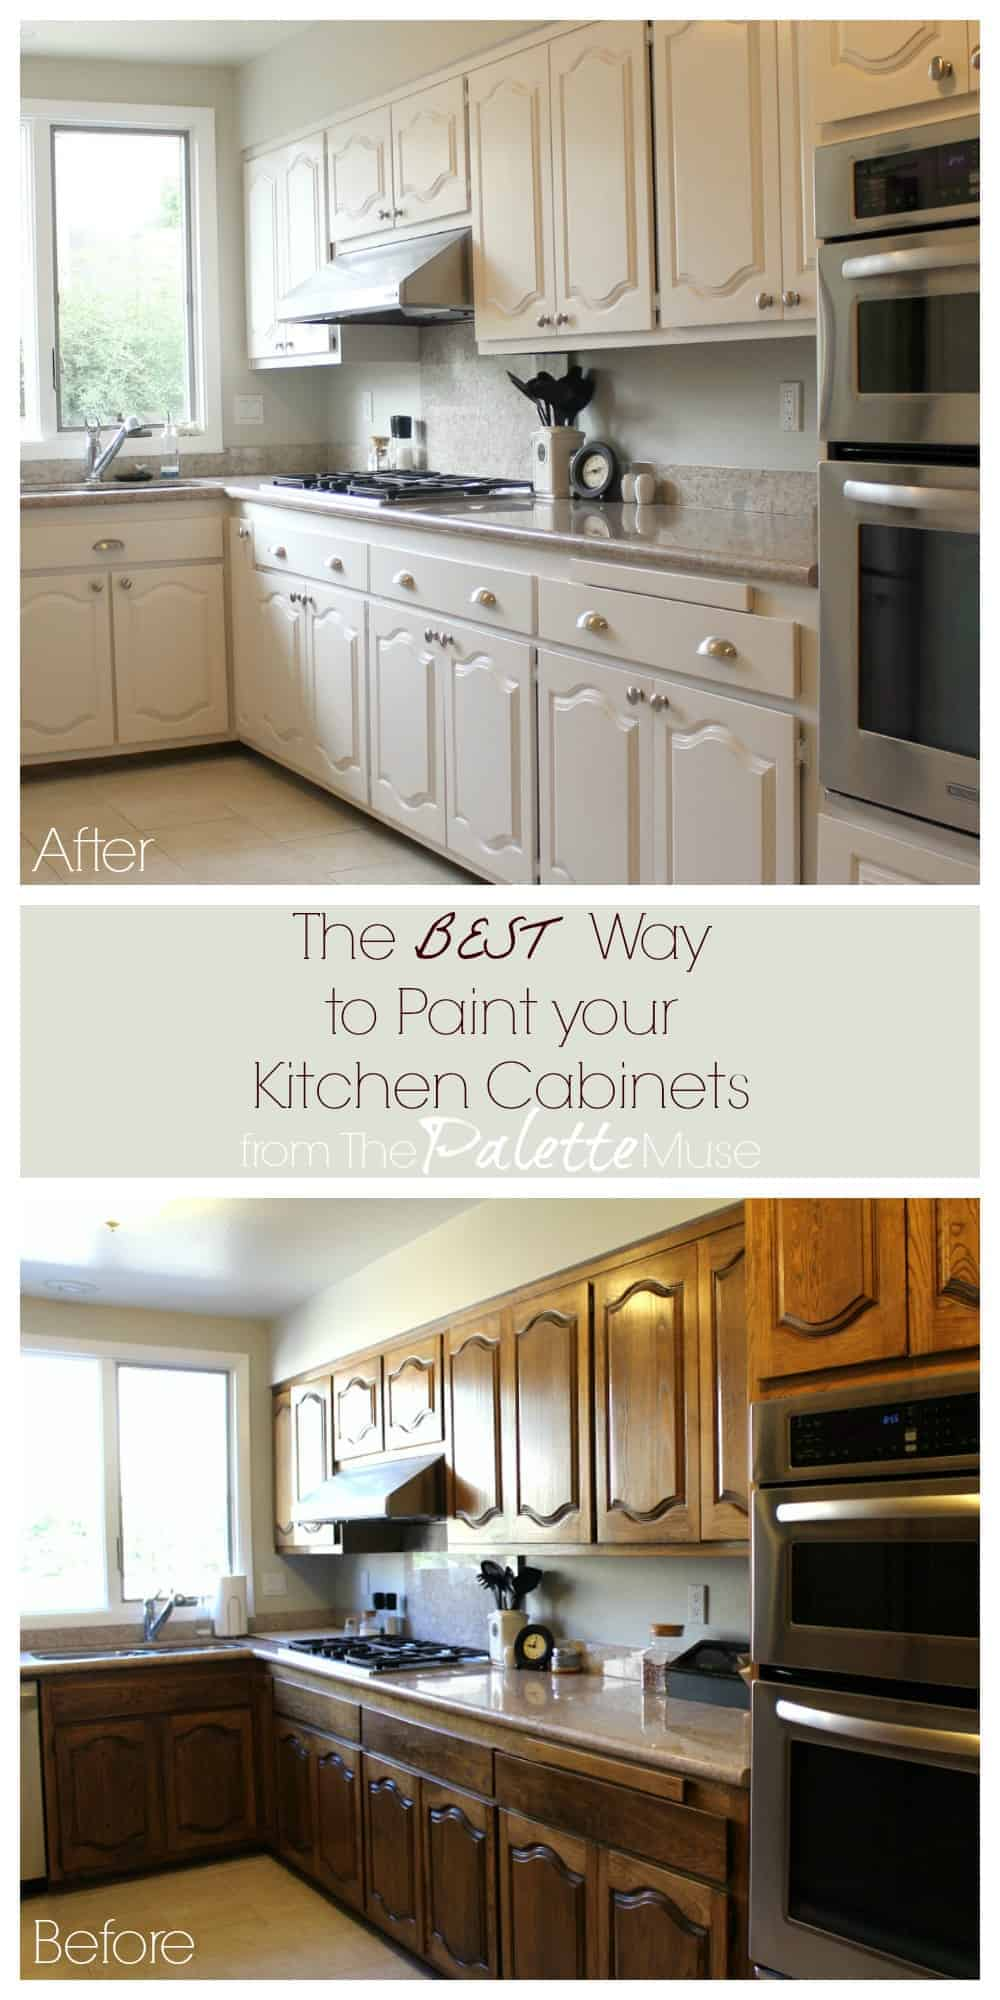 Have You Been Thinking Of Painting Your Kitchen Cabinets? Read This First  And Save Yourself Nice Look